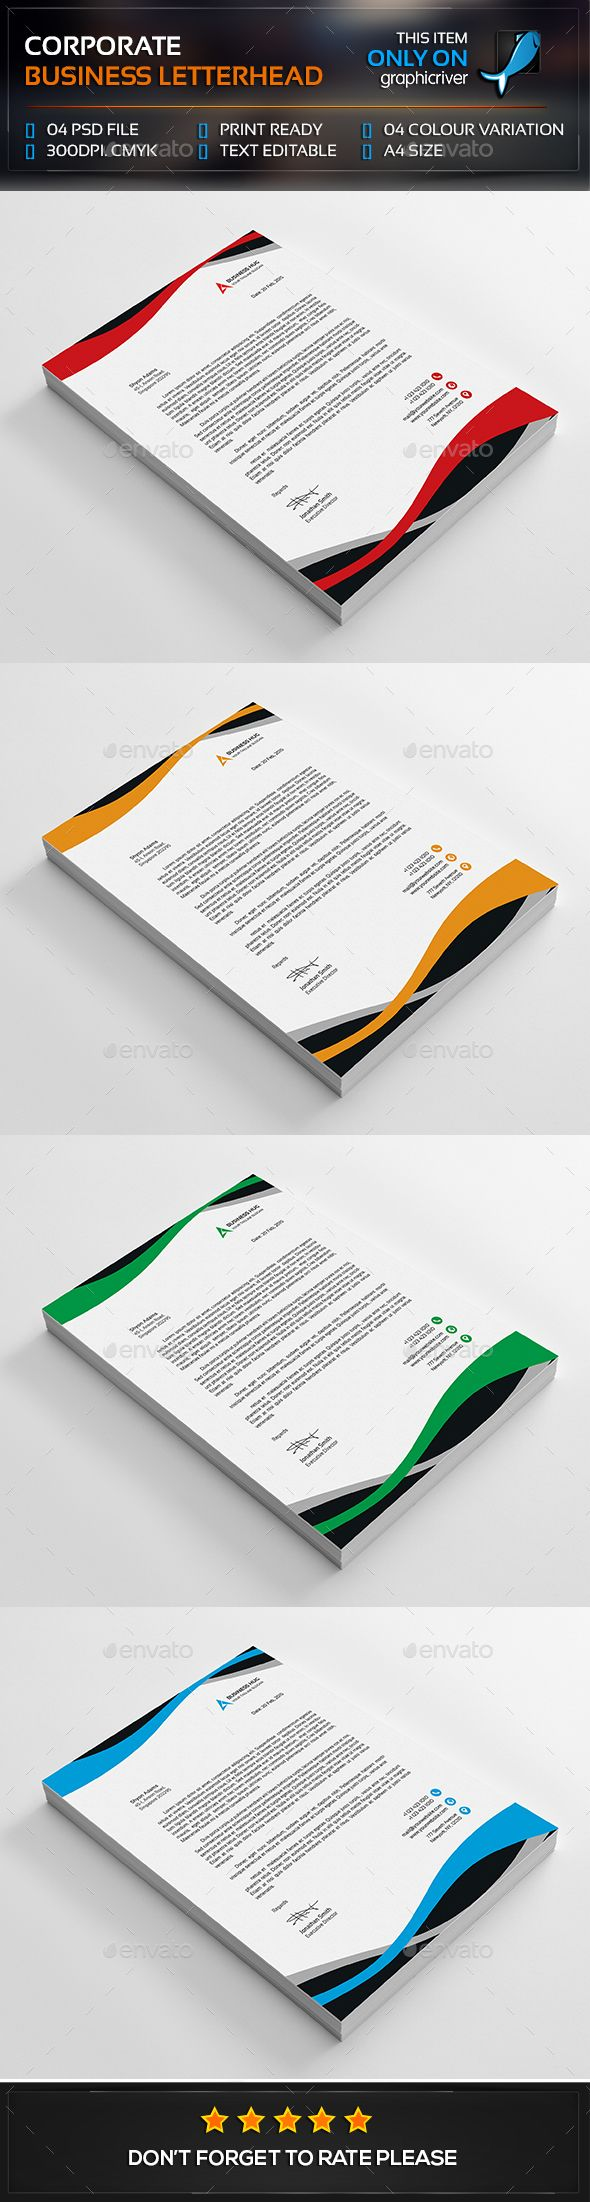 #Corporate Business Letterhead - Stationery Print Templates Download here: https://graphicriver.net/item/corporate-business-letterhead/13367448?ref=classicdesignp